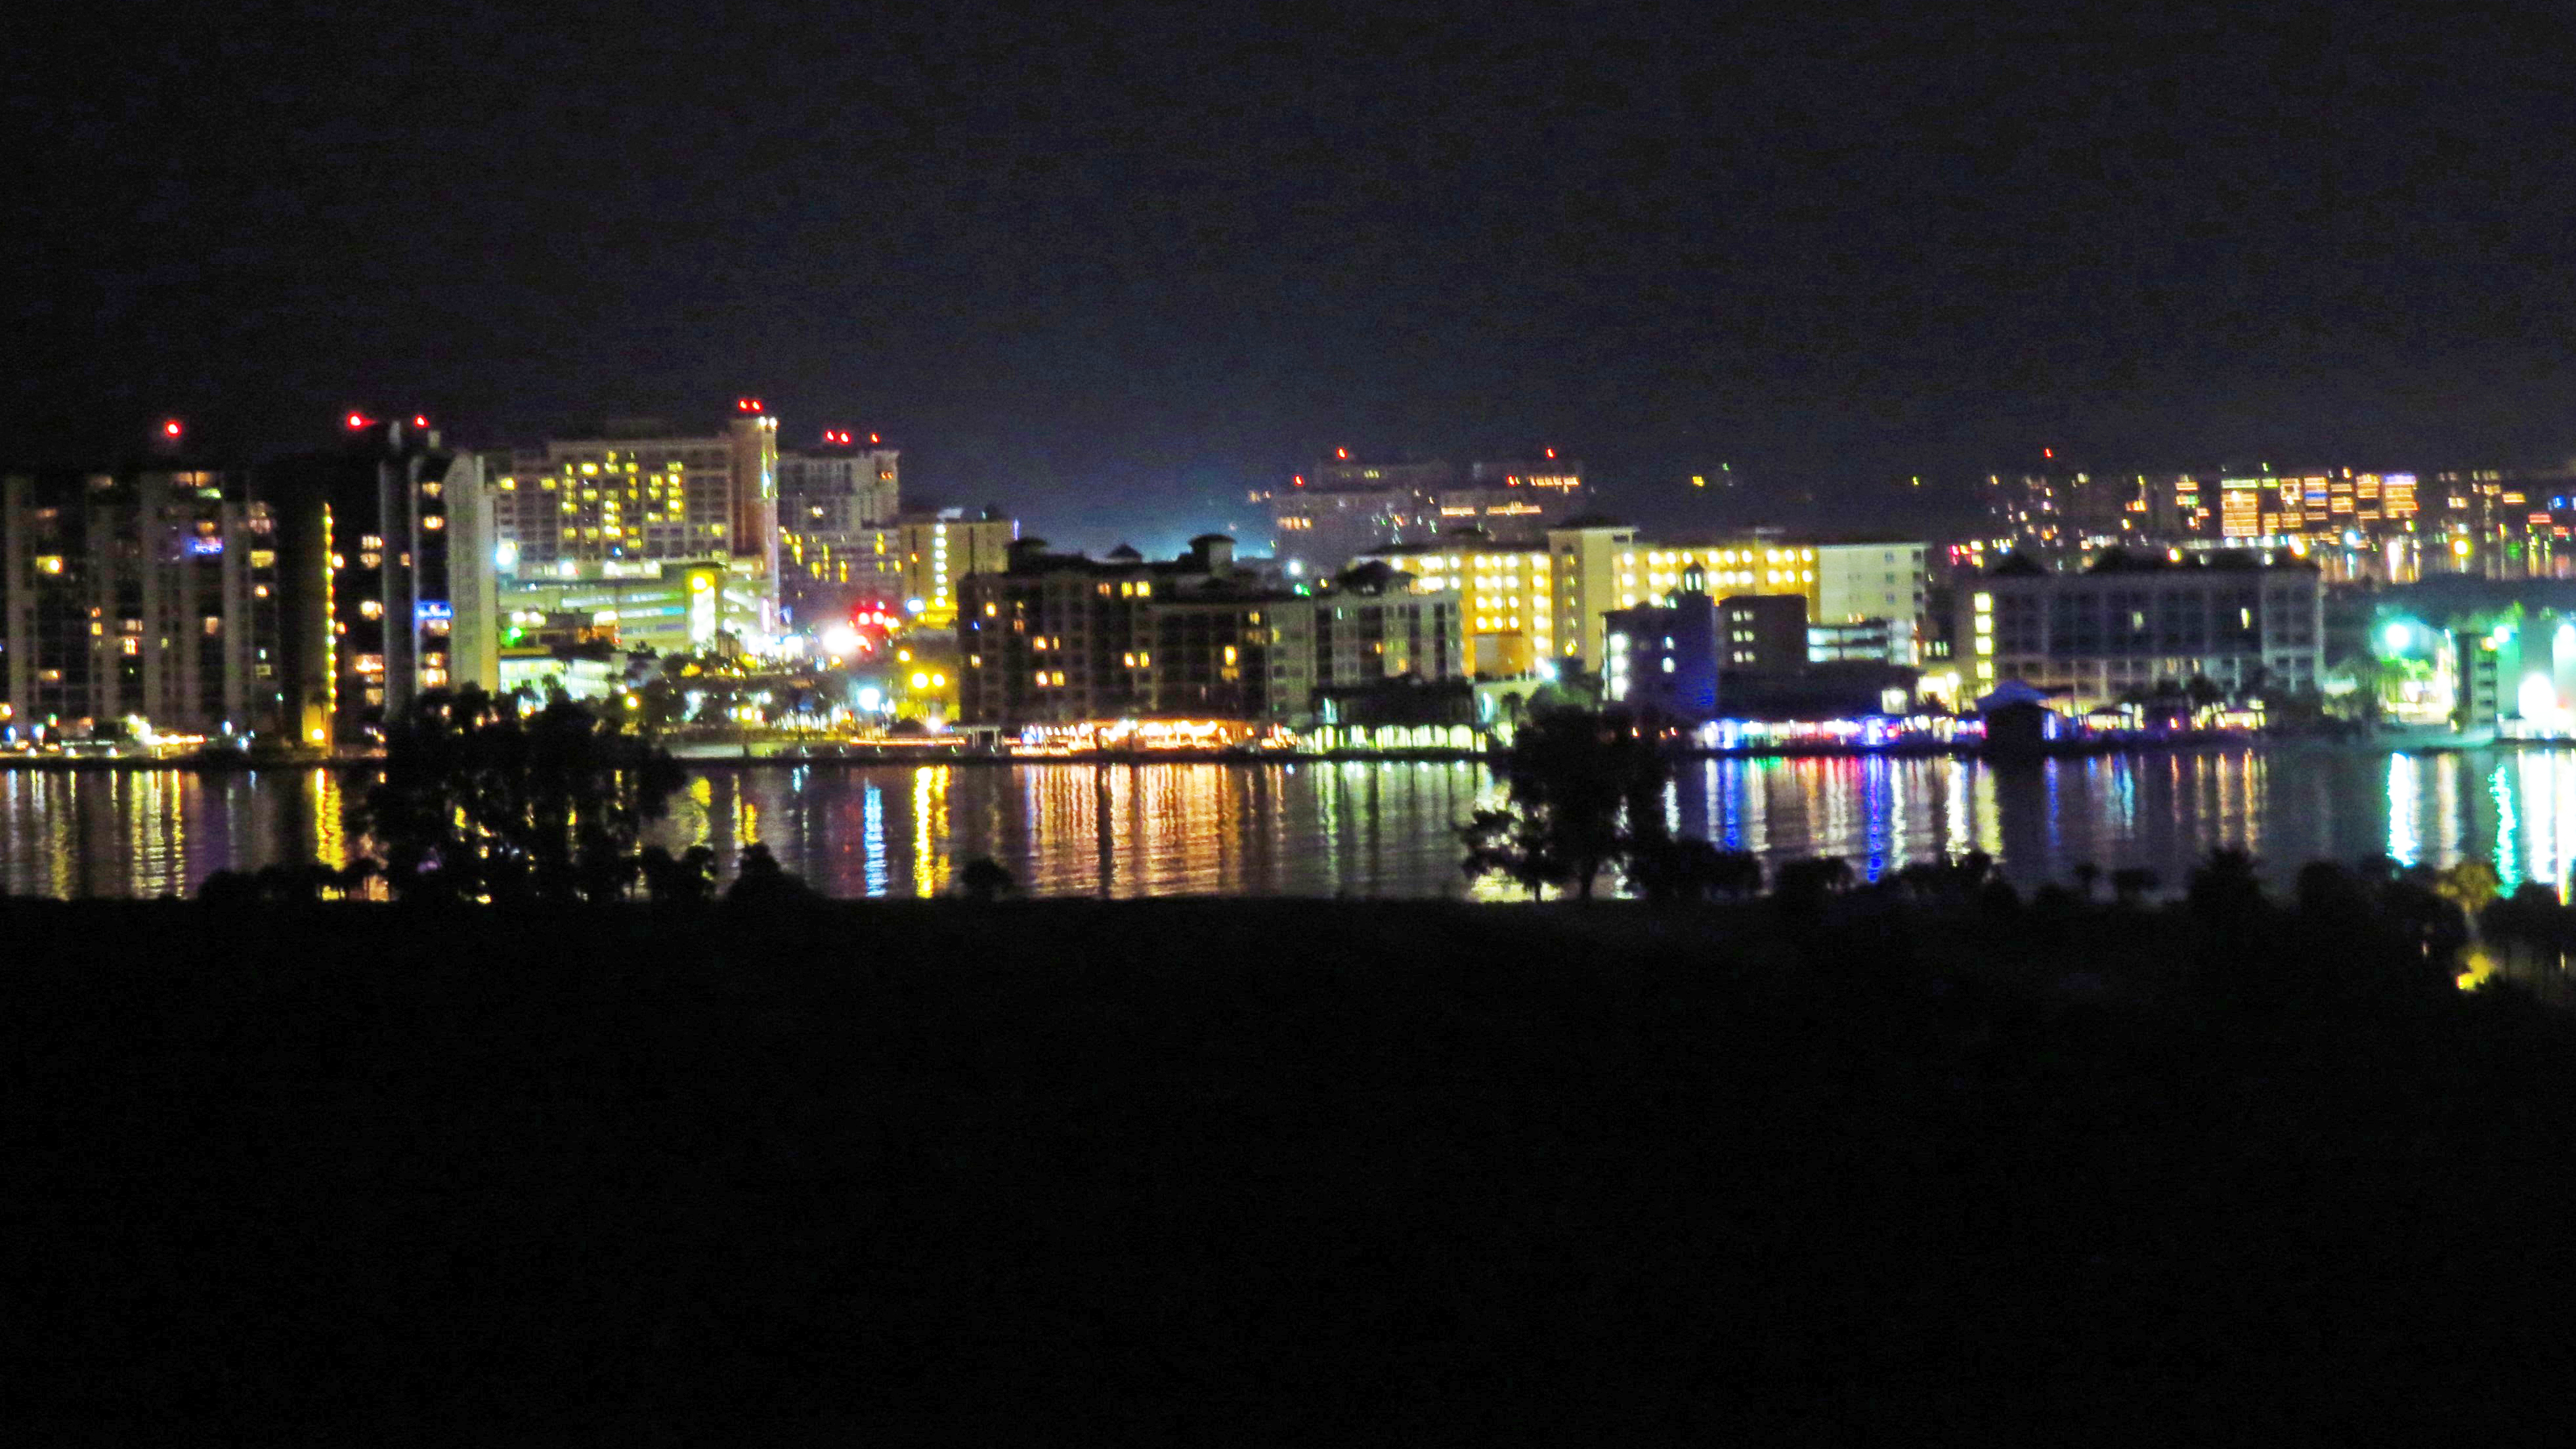 clearwater beach at night